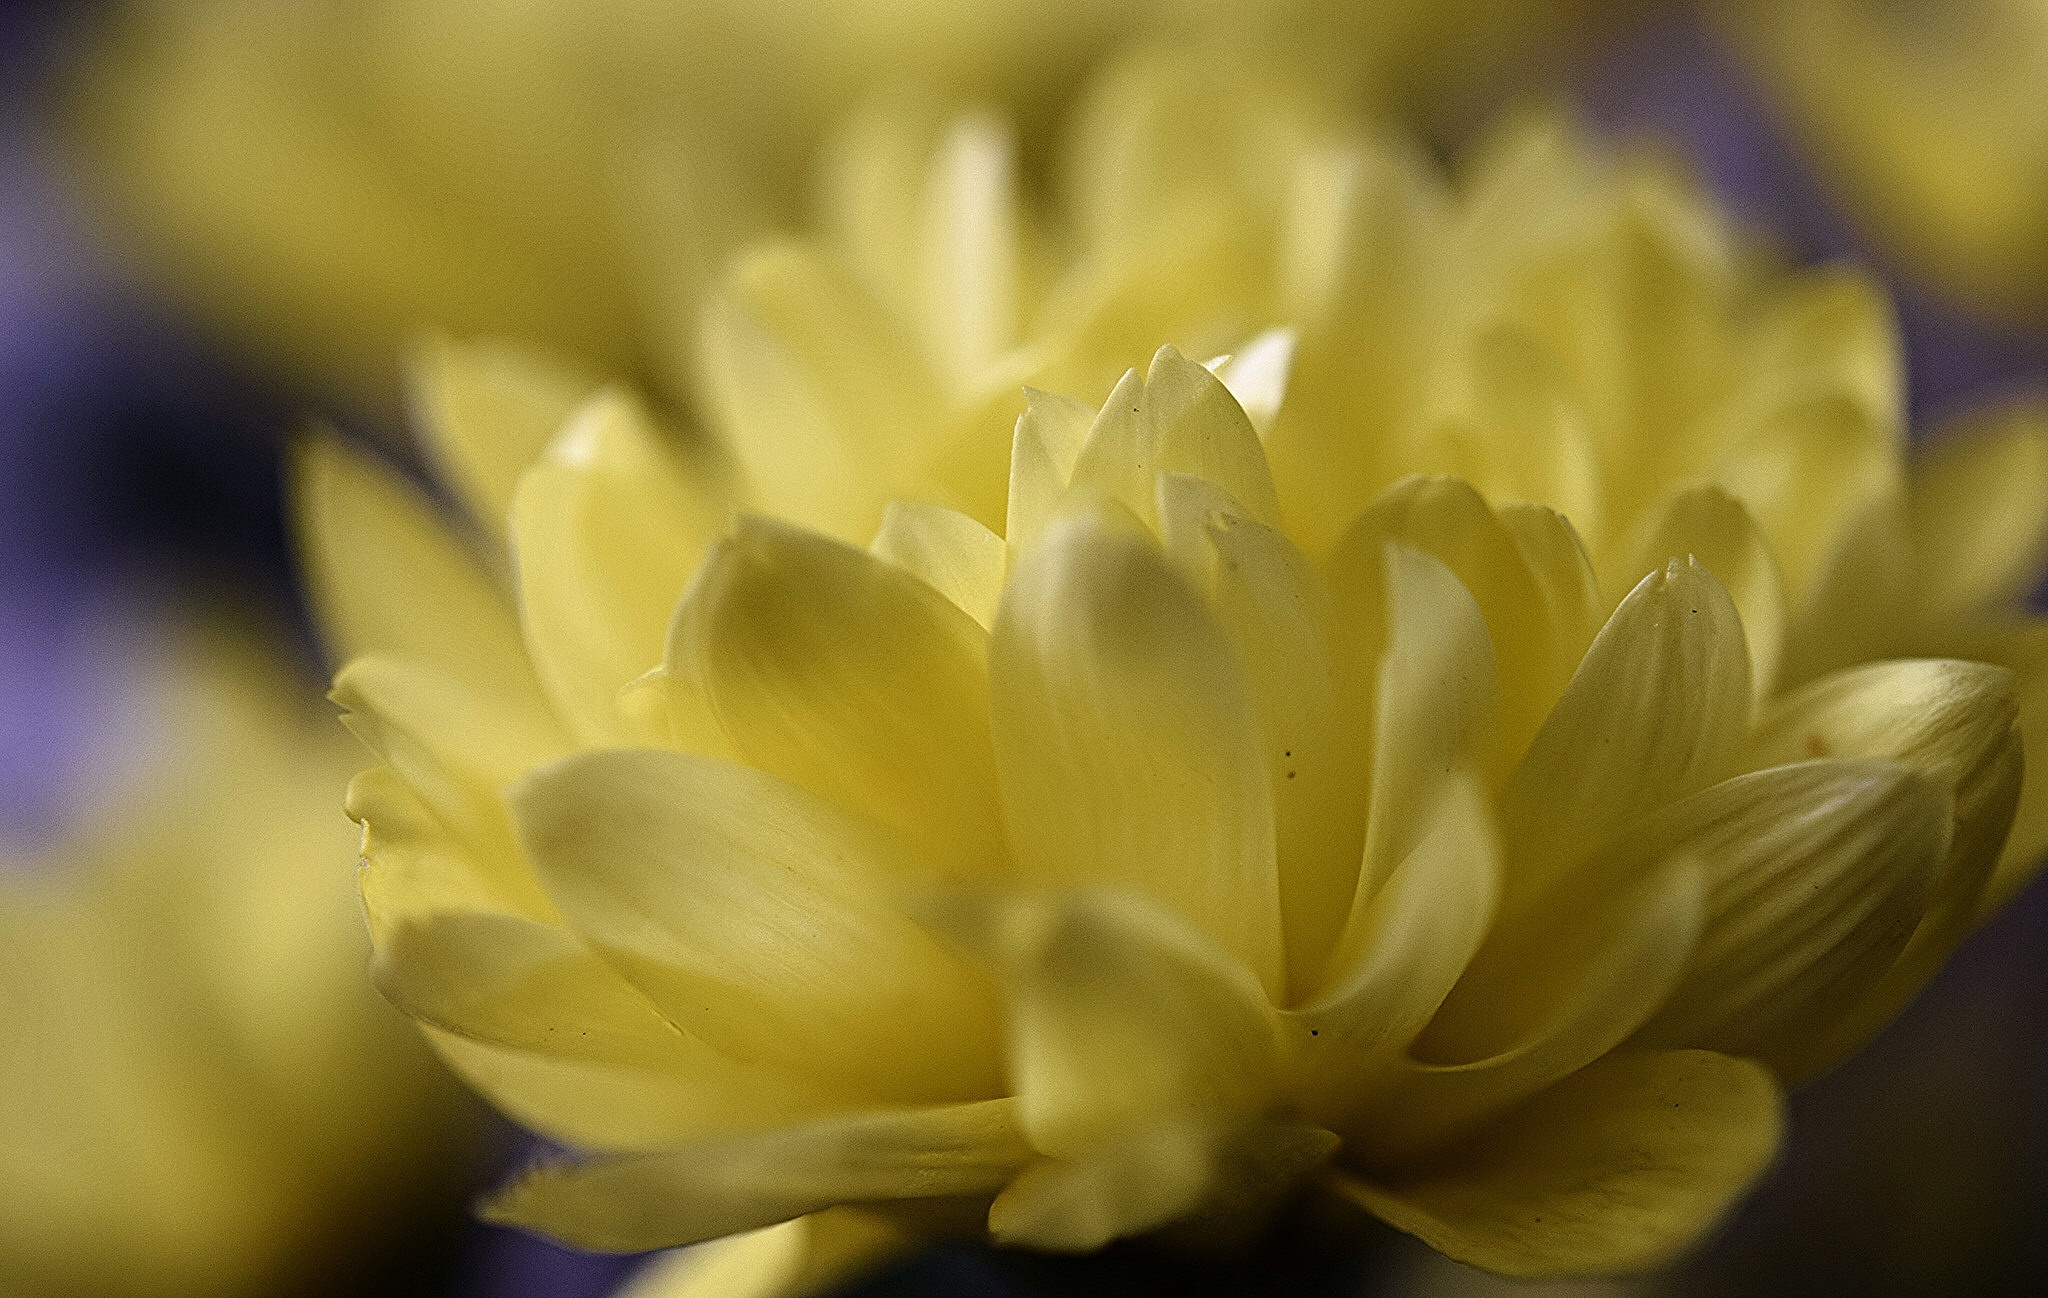 Shades of yellow by Diana